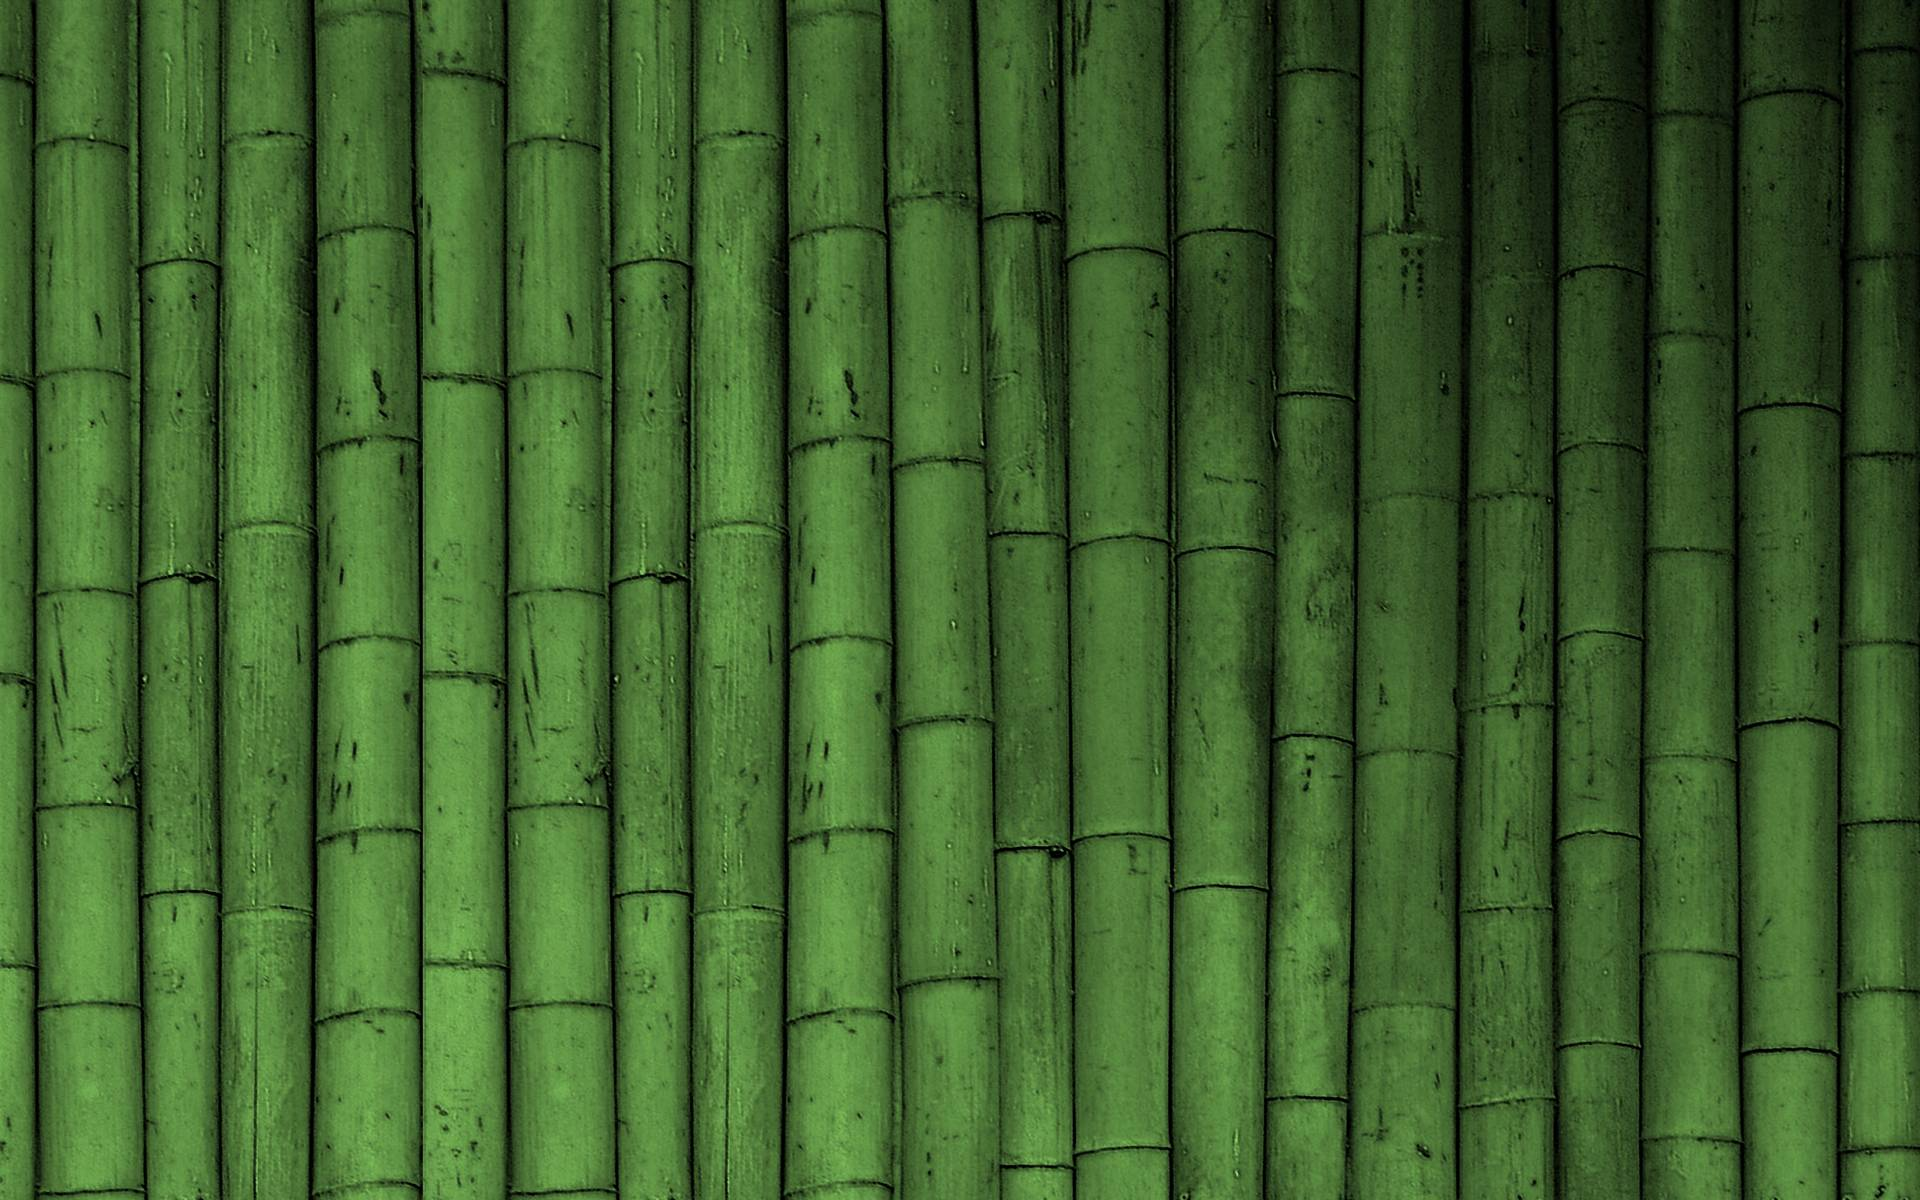 bamboo wallpaper by doantrangnguyen - photo #20